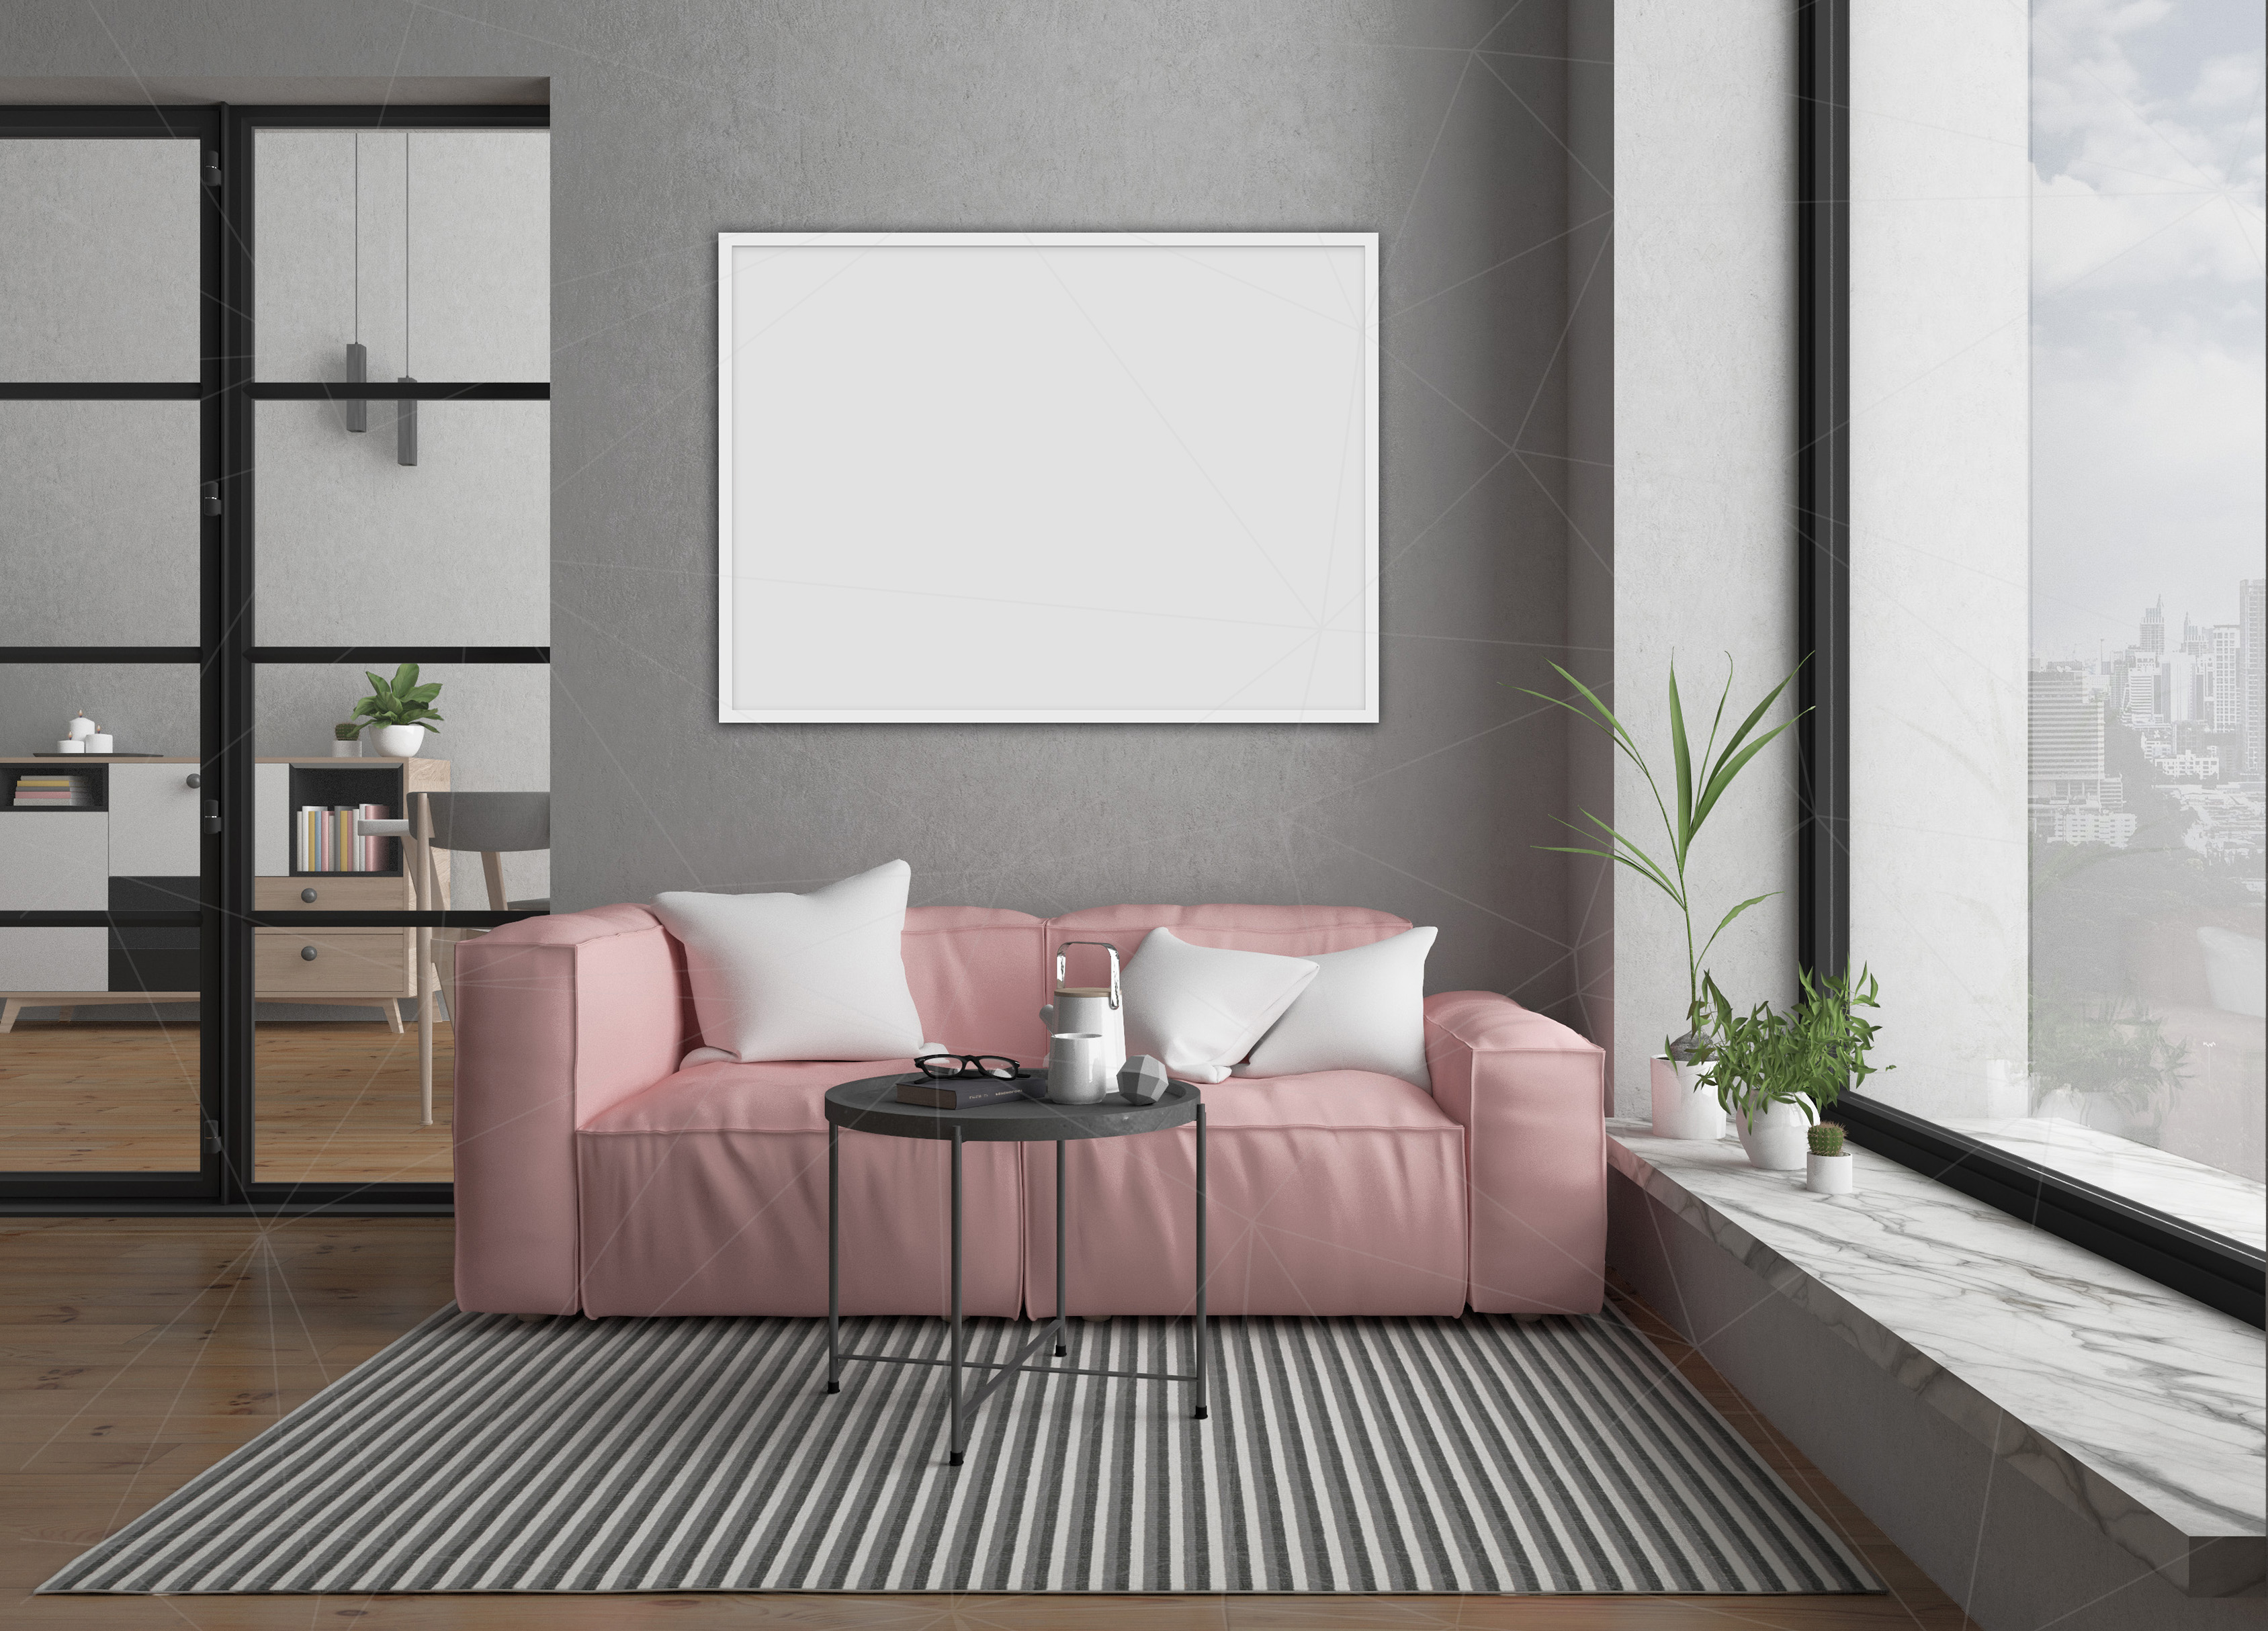 Interior mockup bundle - blank wall mock up example image 6